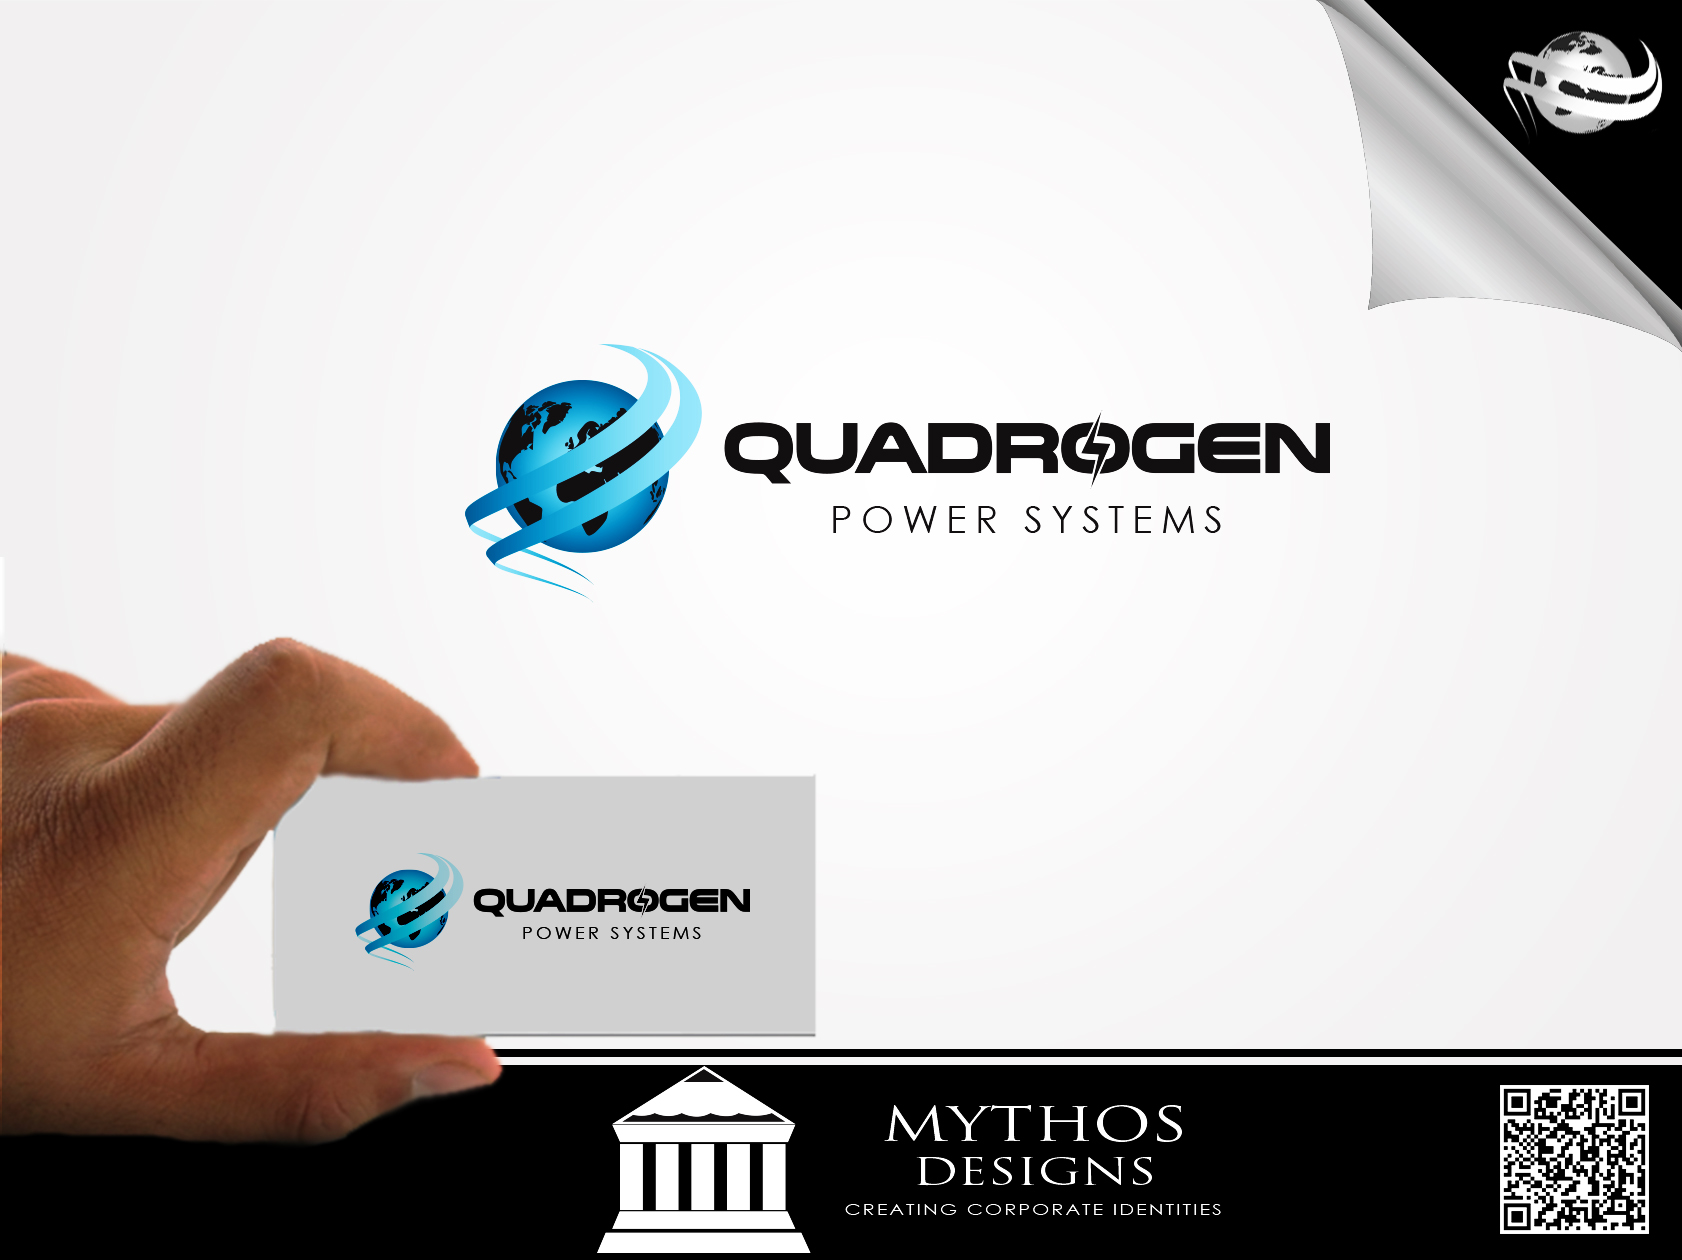 Logo Design by Mythos Designs - Entry No. 27 in the Logo Design Contest New Logo Design for Quadrogen Power Systems, Inc.